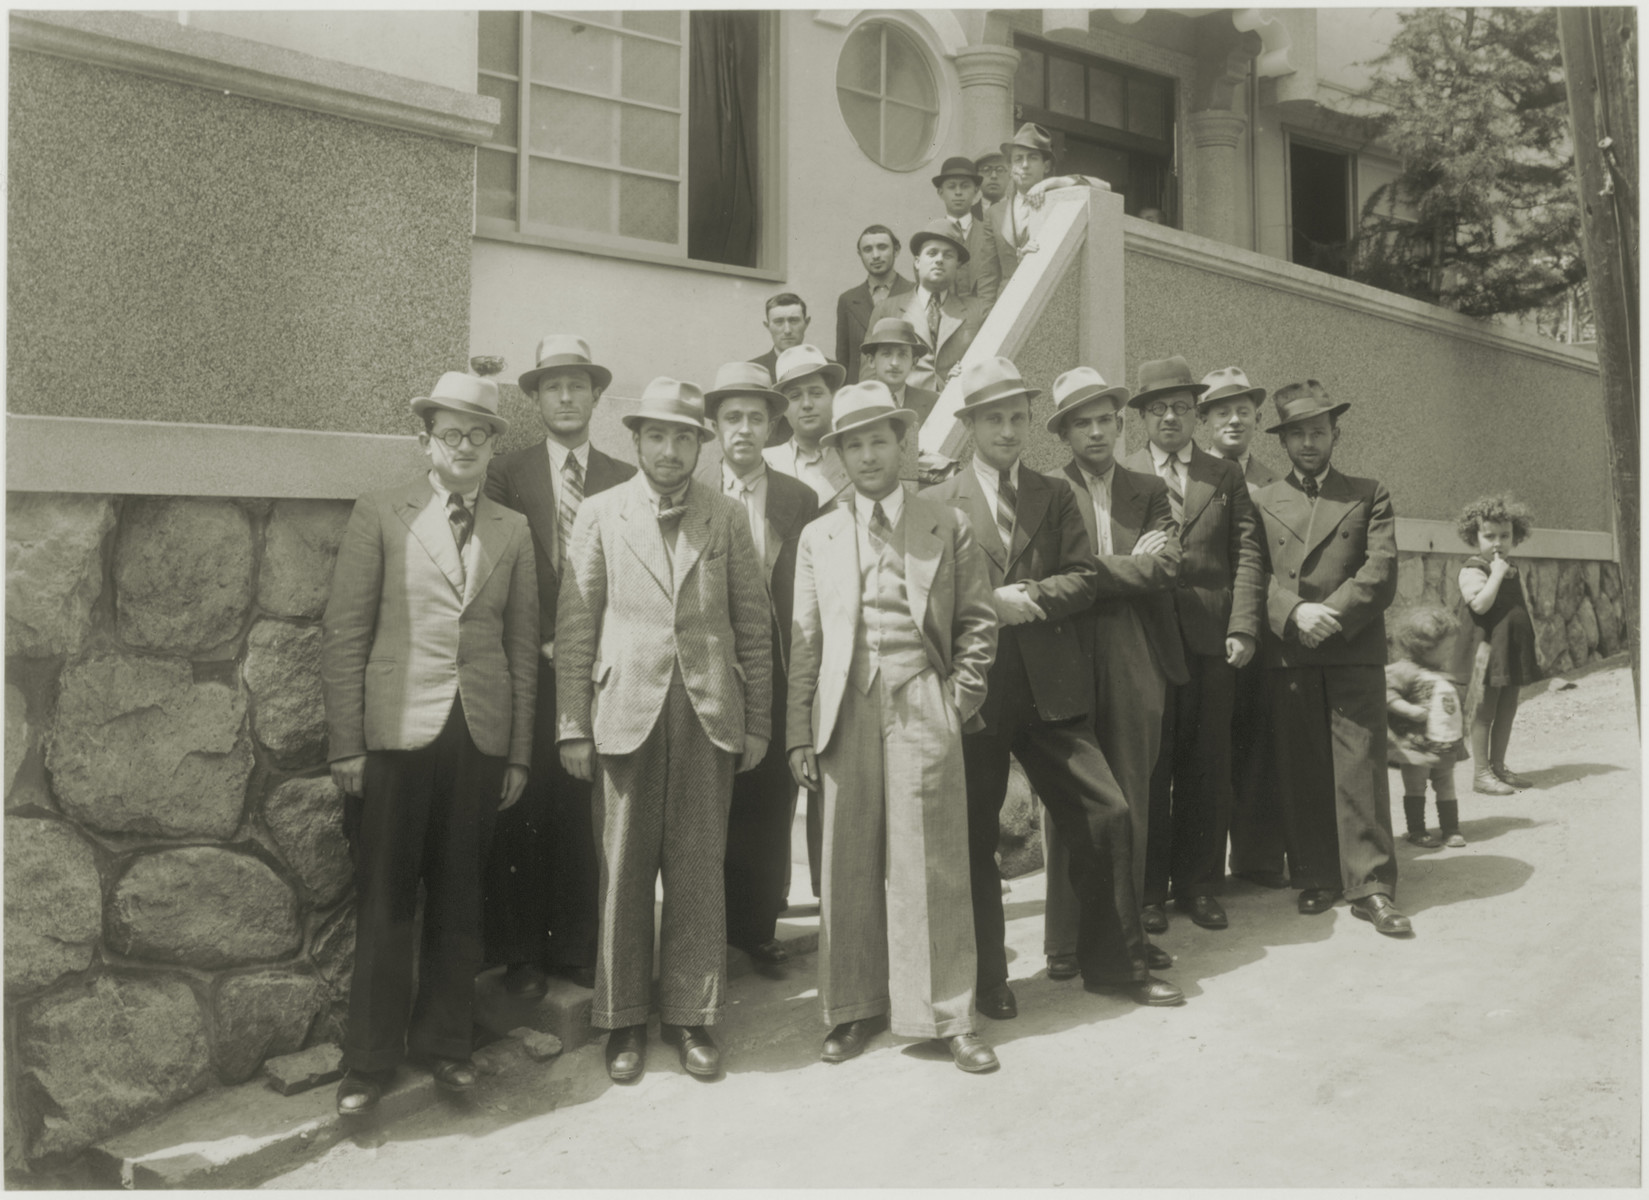 A group of students from the Mir and Lublin yeshivas gather in front of a building provided by the Jewish Committee in Kobe.   Rabbi Avraham Blumenkrantz is on the far left.  Next to him is Avraham Kravitz. Chaim Kaminsky is in the center, and Markel Greenhaus is third from the right.